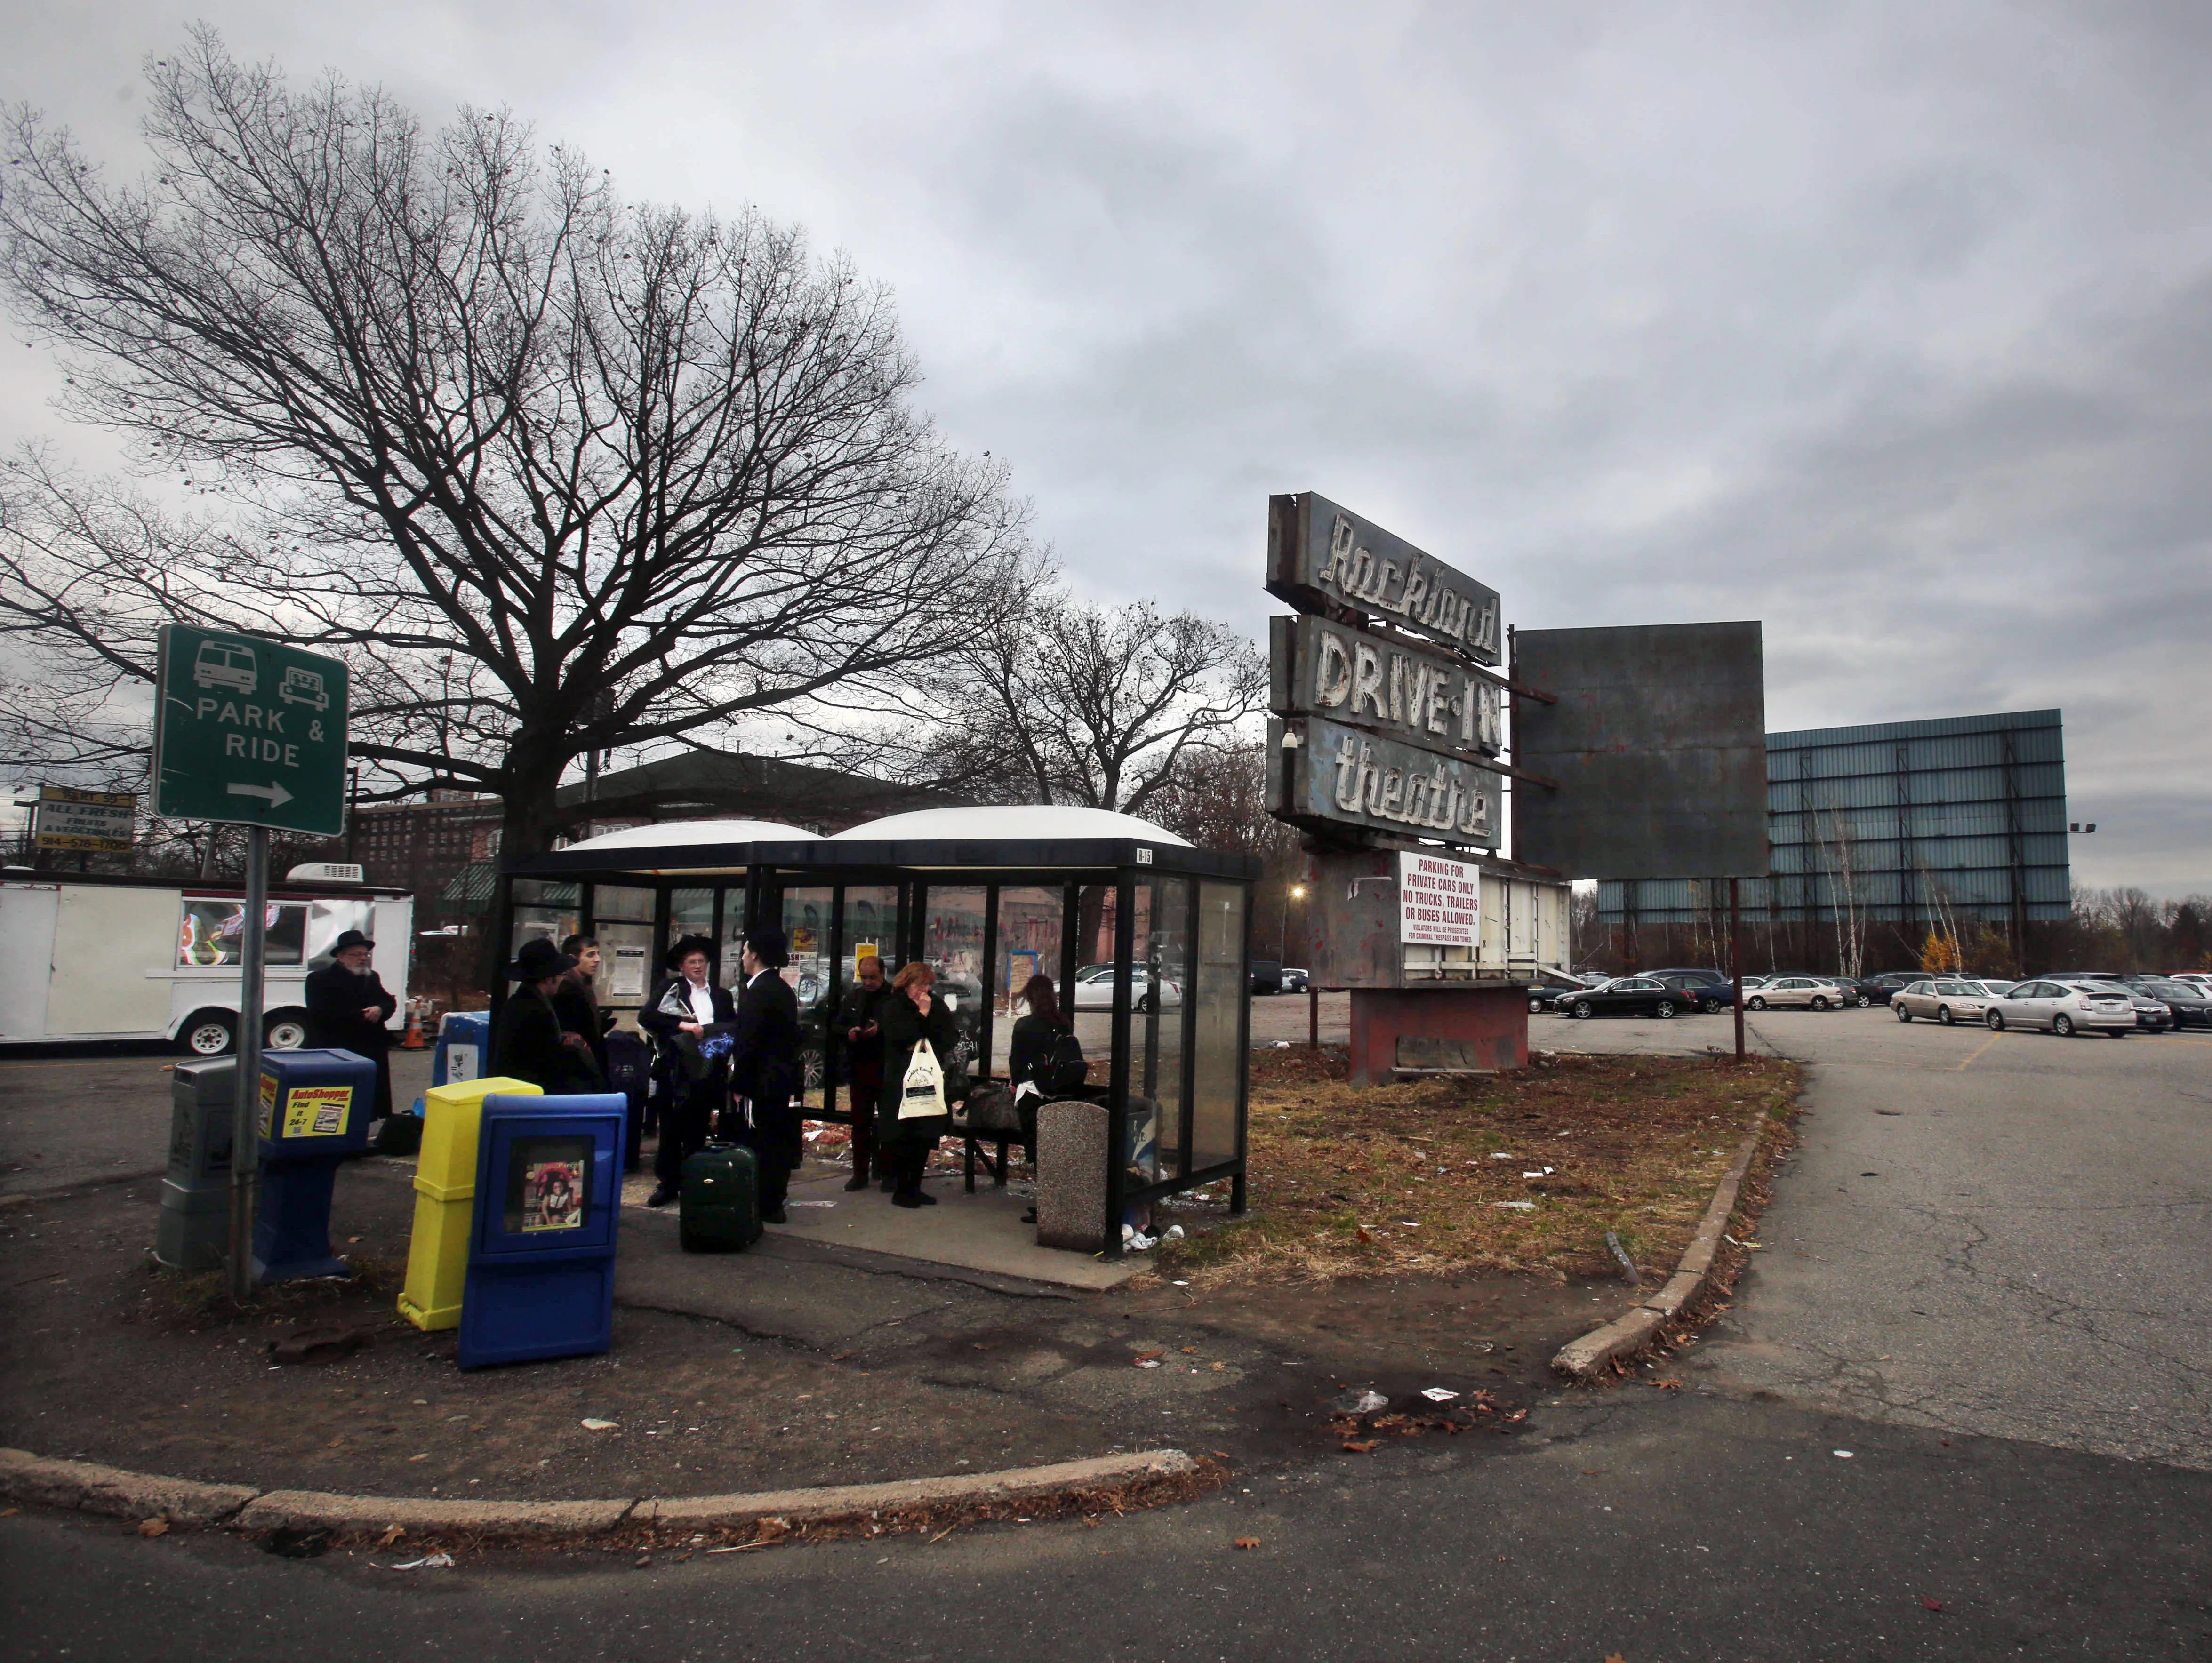 hight resolution of a bus stop in front of the old rockland drive in theater